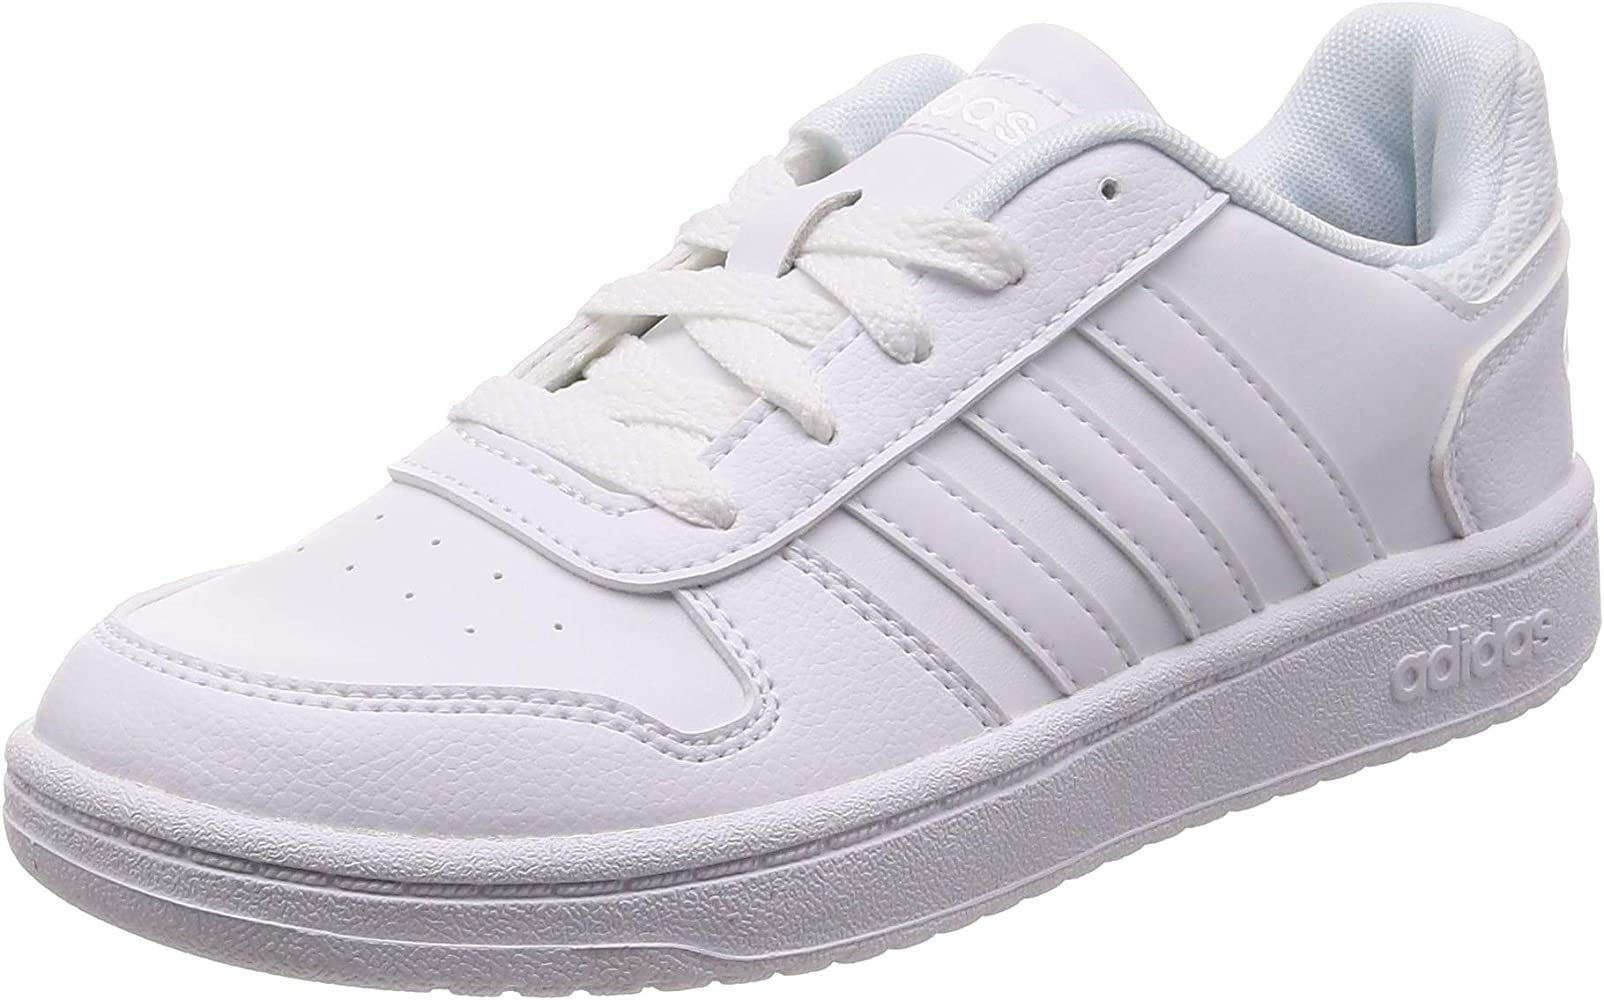 chaussures adidas hoops femme